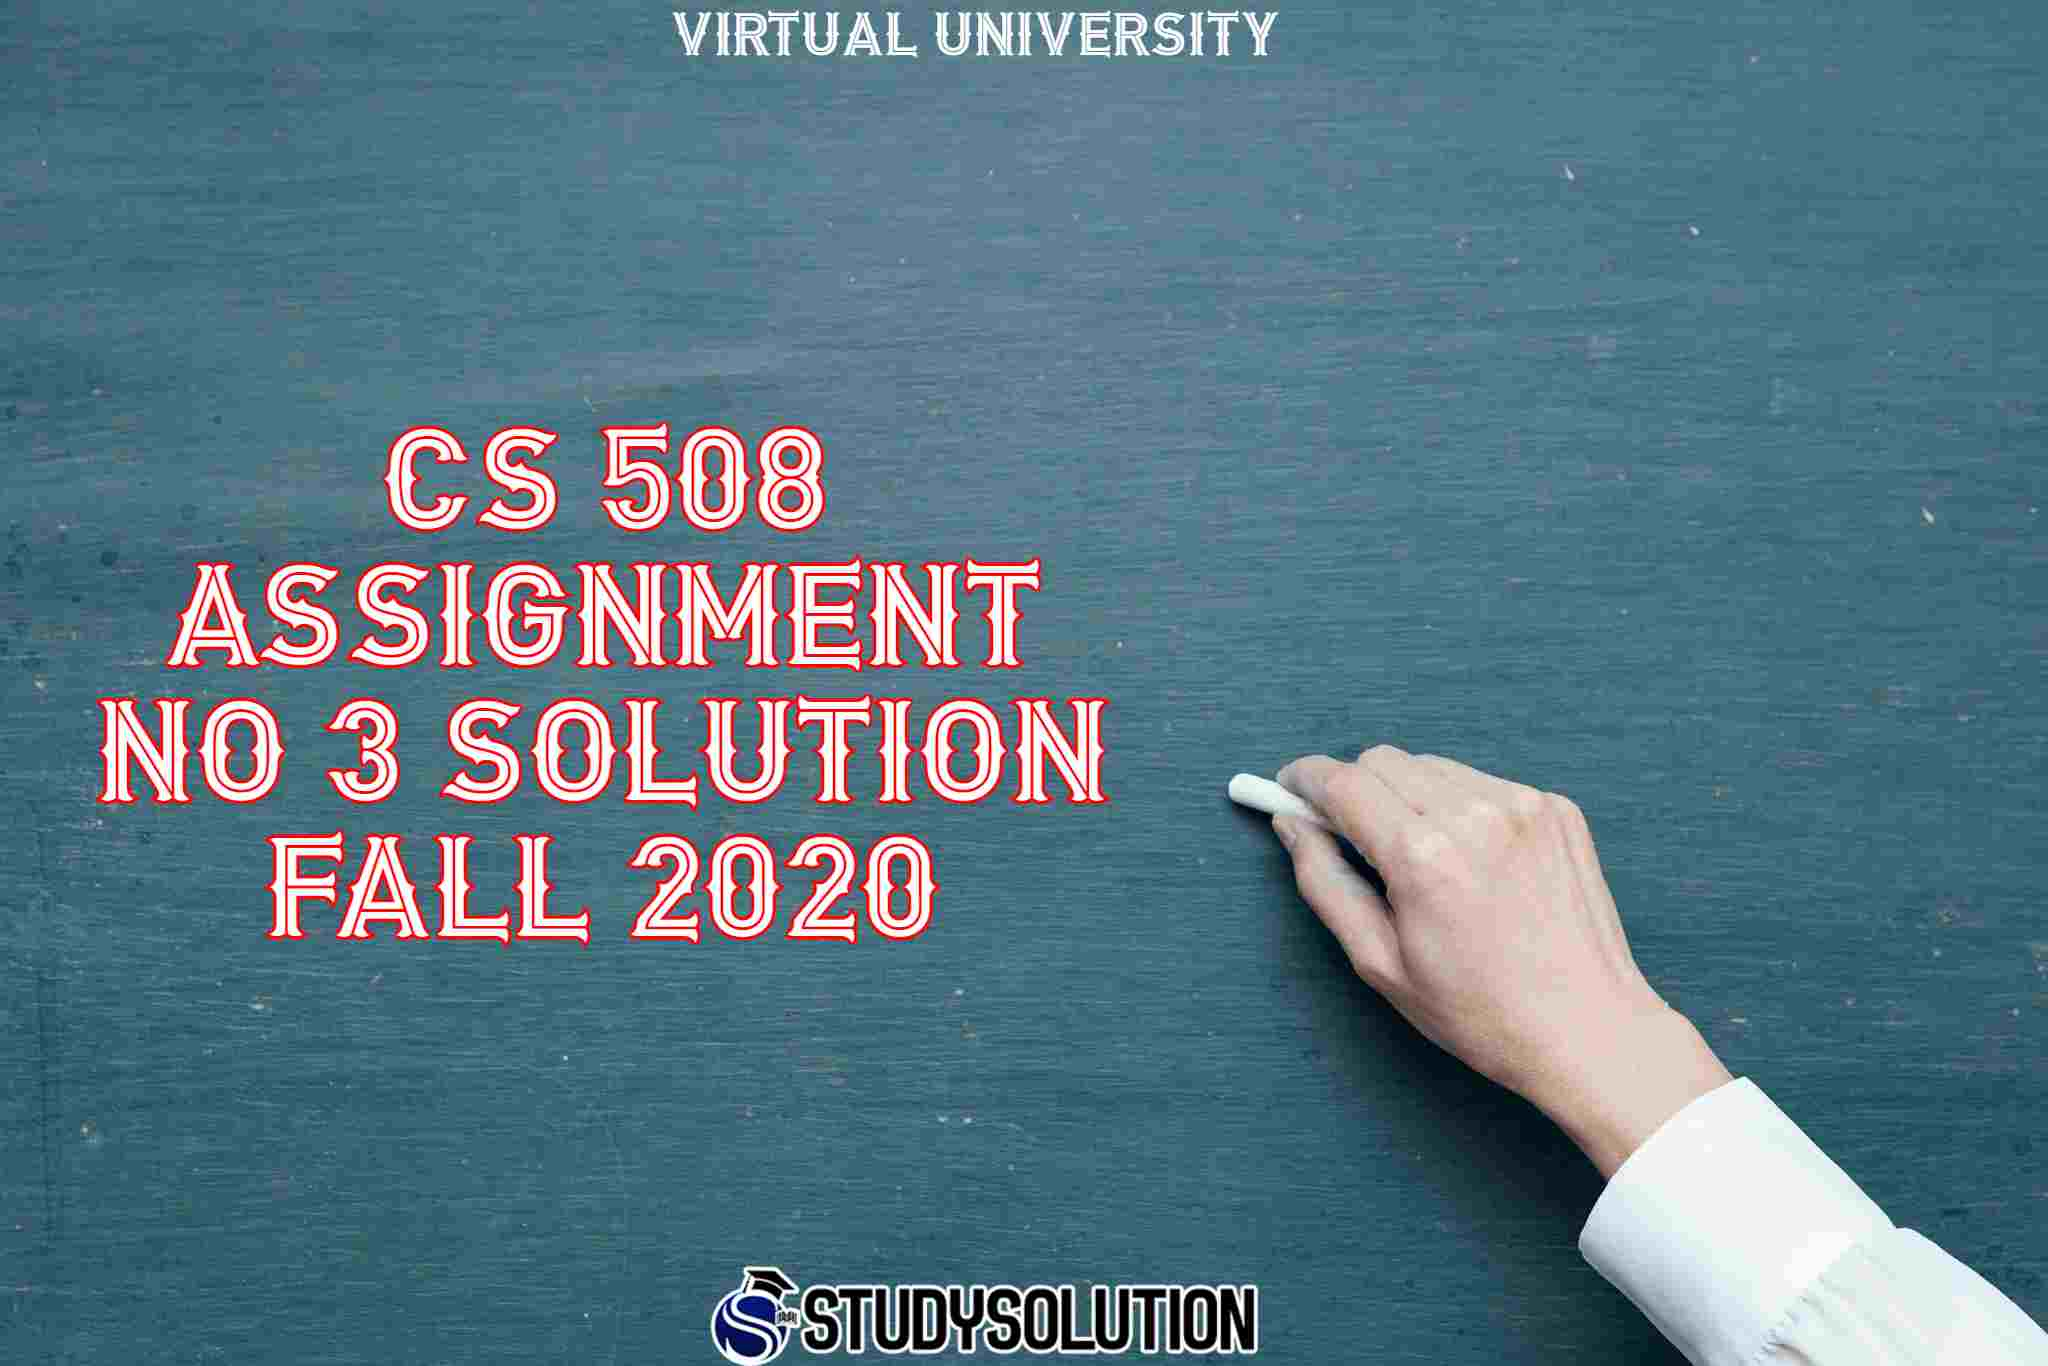 CS 508 Assignment No 3 Solution Fall 2020